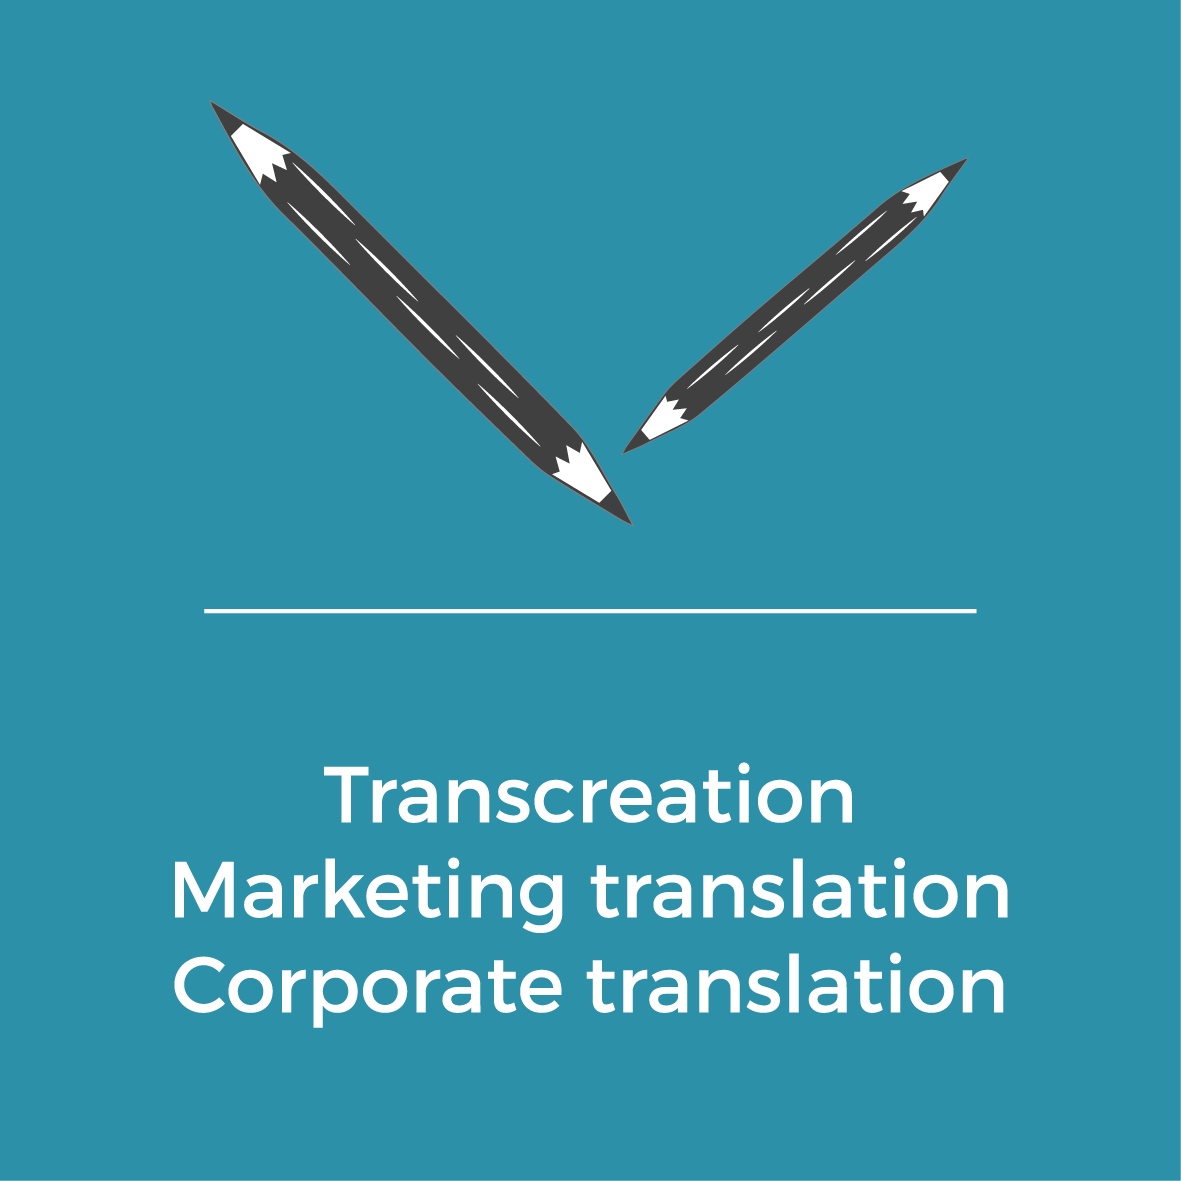 Services - Transcreation - Marketing translation - Corporate translation